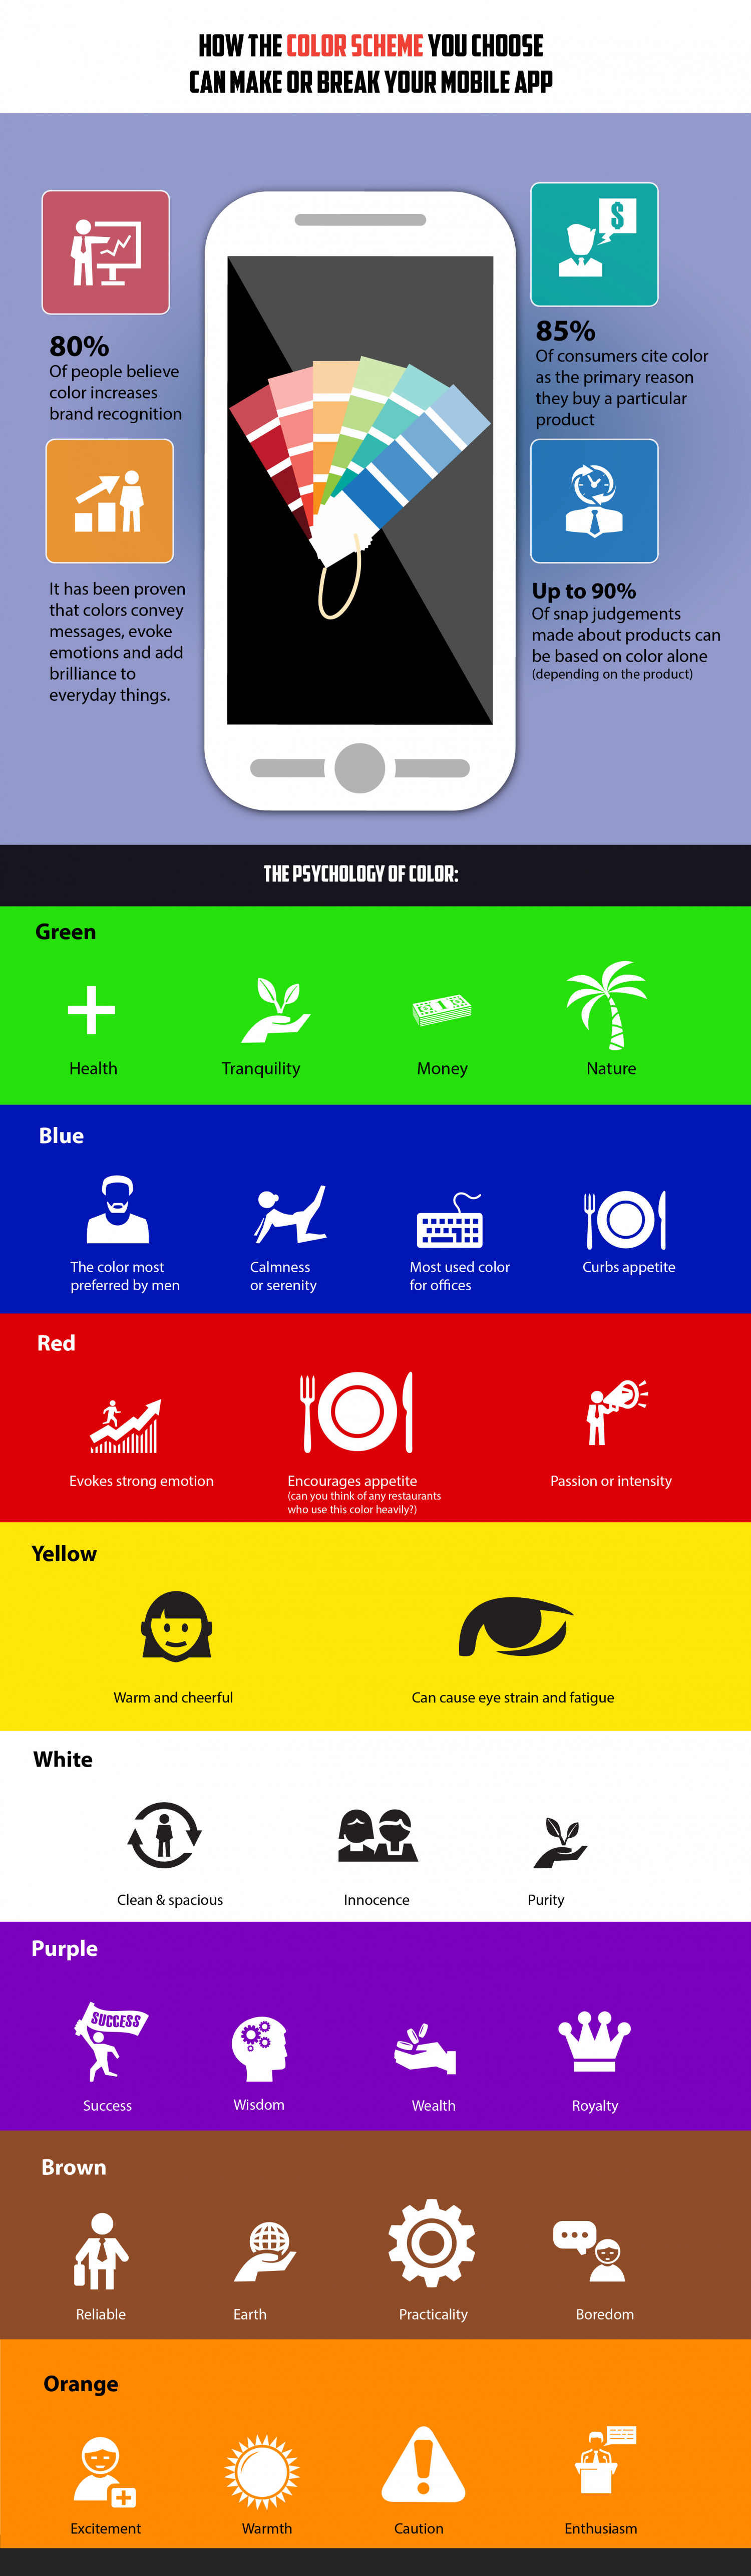 How To Choose The Right Colors For Your Mobile App Infographic